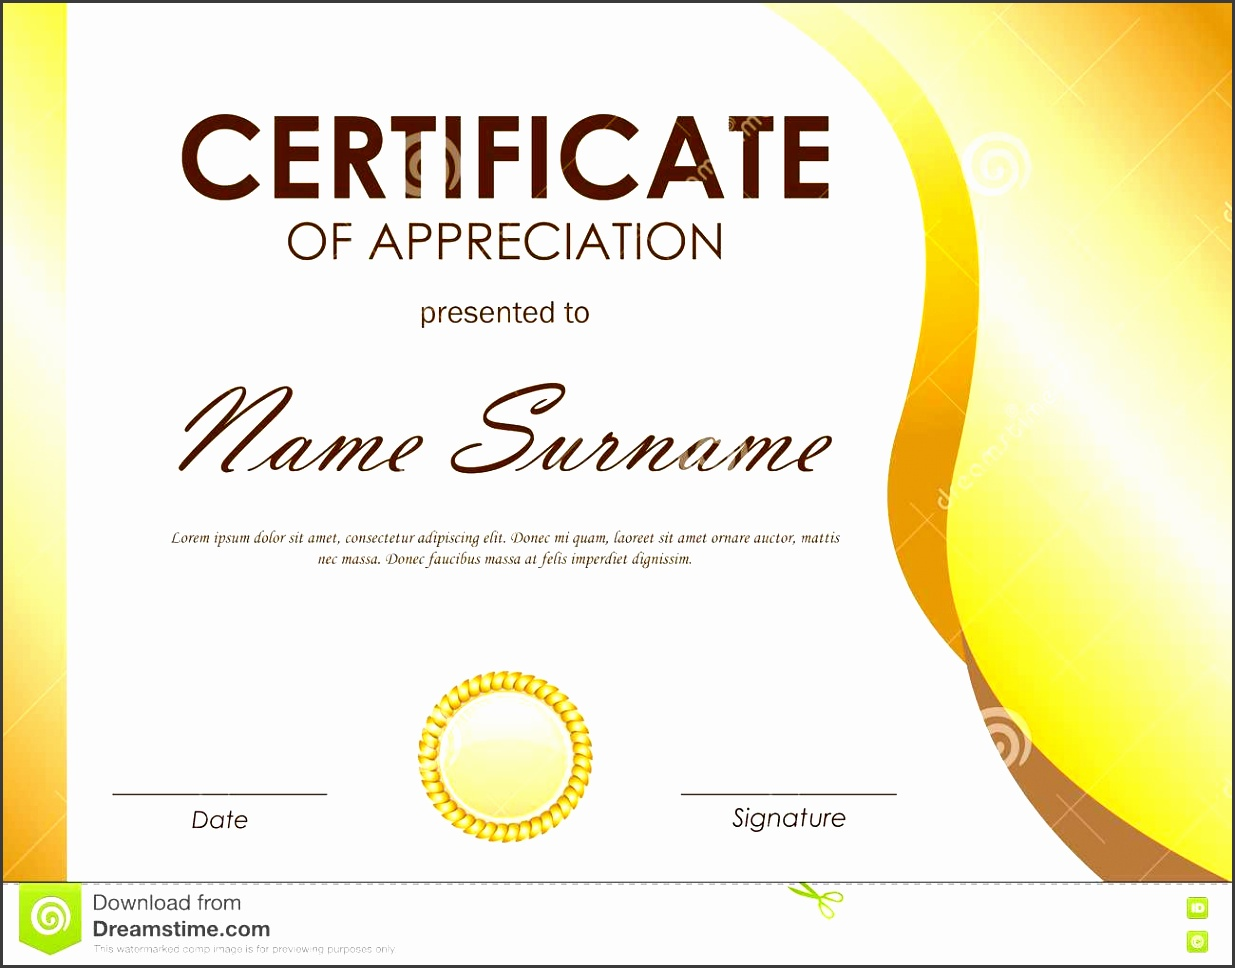 8 Easy To Use Certificate Of Appreciation Template Word Certificate Of Appreciation  Template Project Schedule Sample  Certificate Of Appreciation Word Template